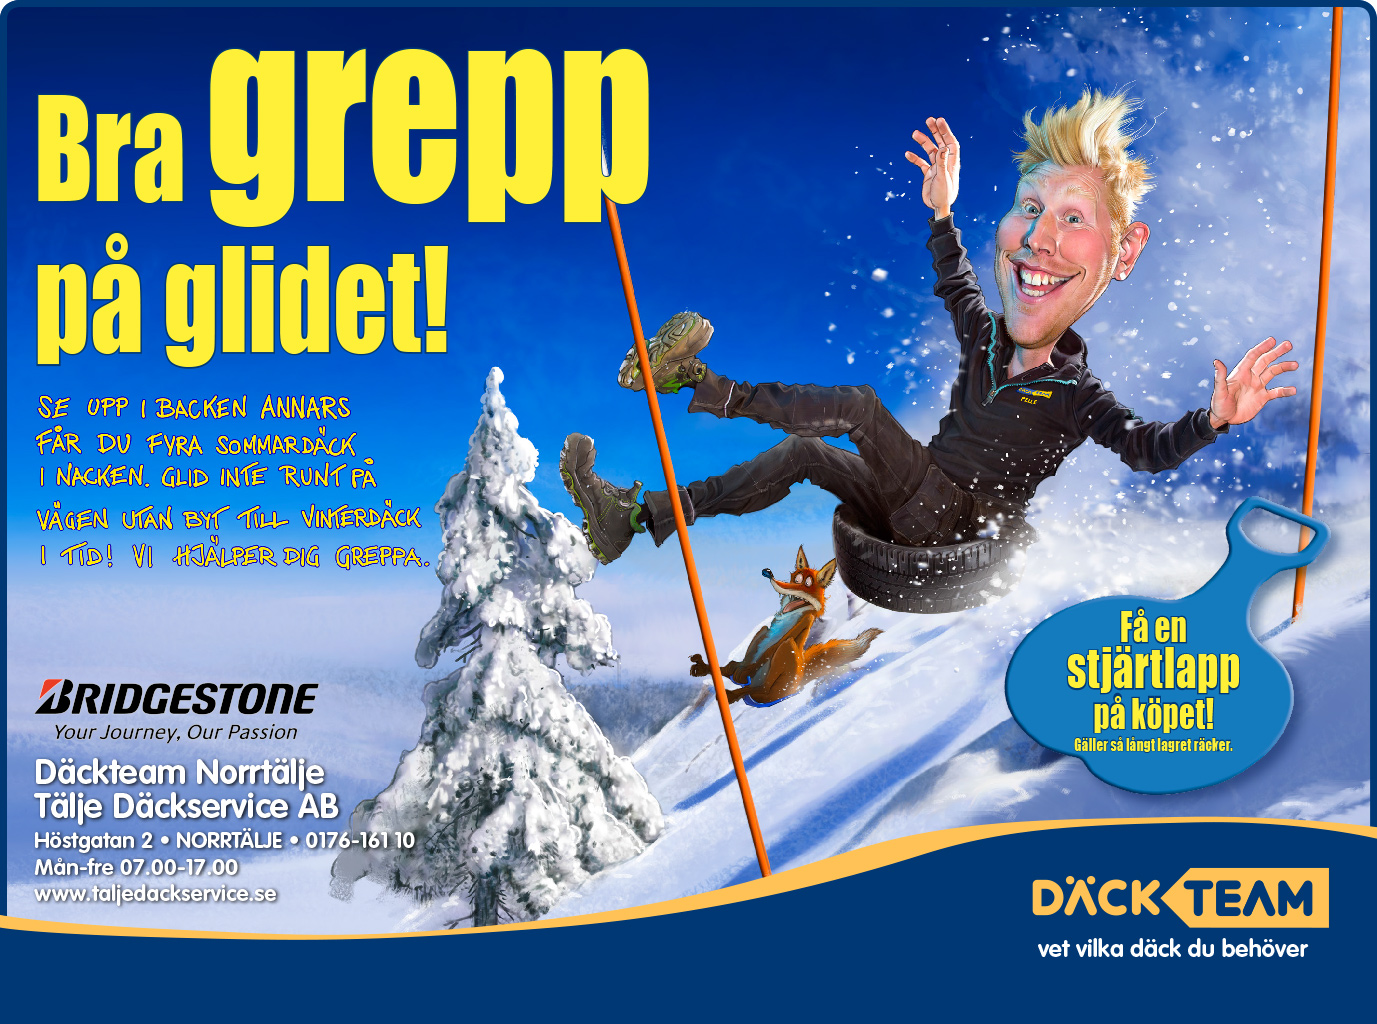 Däckteam Campaigns! Good grip on the glide! Illustration